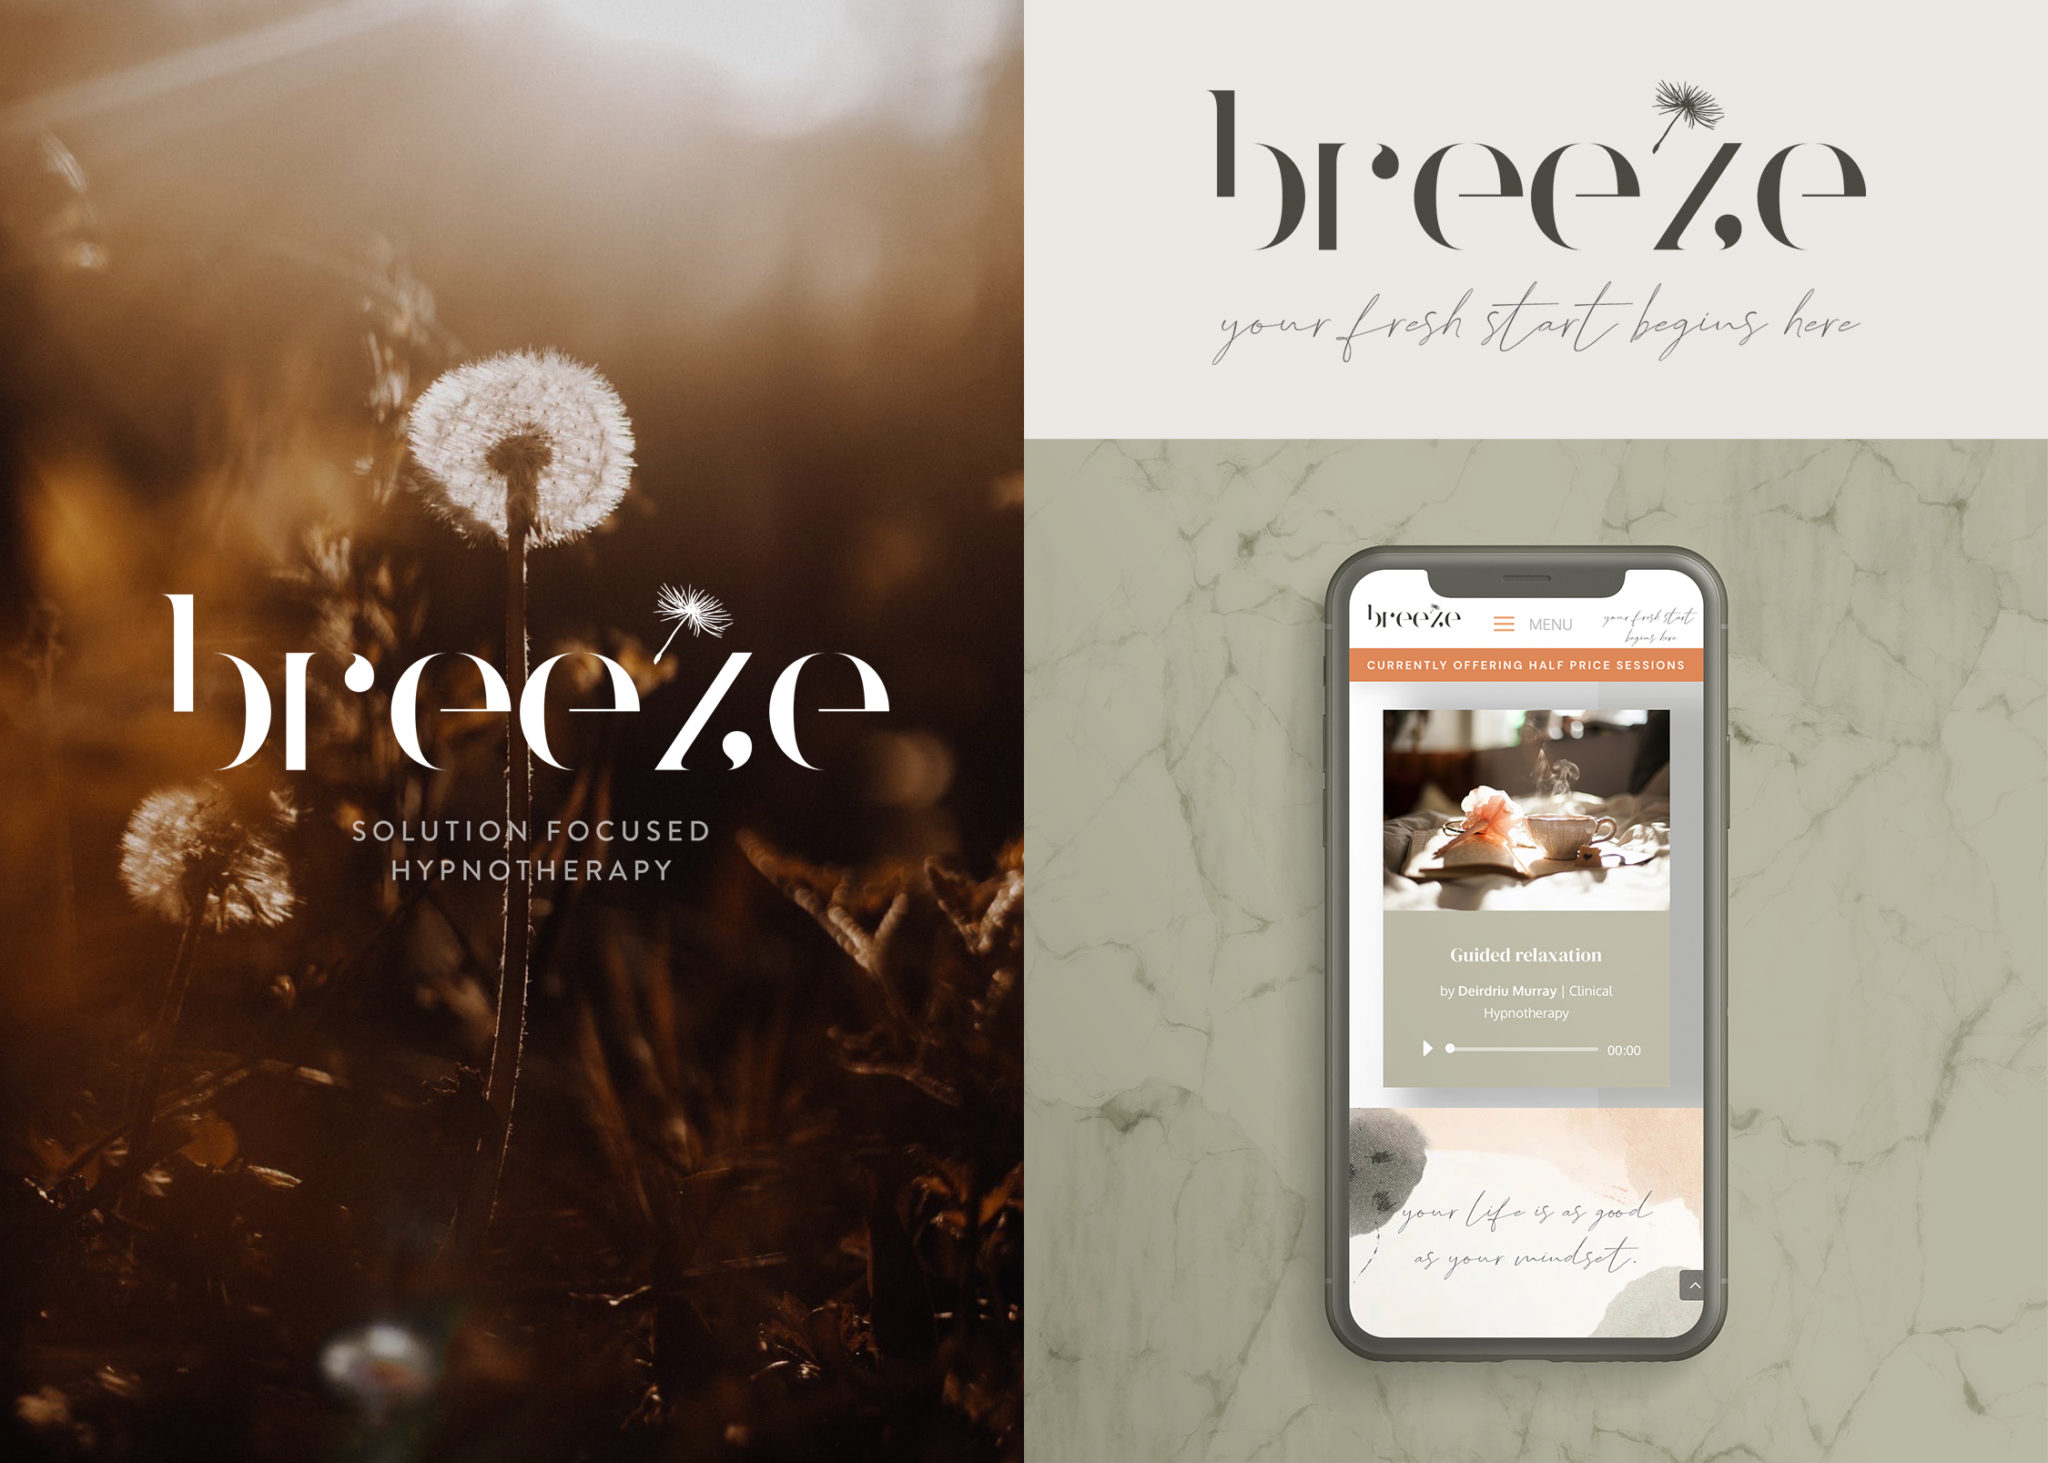 Breeze_Hypnotherapy_Logodesign_Branding_Website_SEO_Social_Media_Strategy_by_Seabee_Design_Studioa_seabe.at_-scaled.jpg